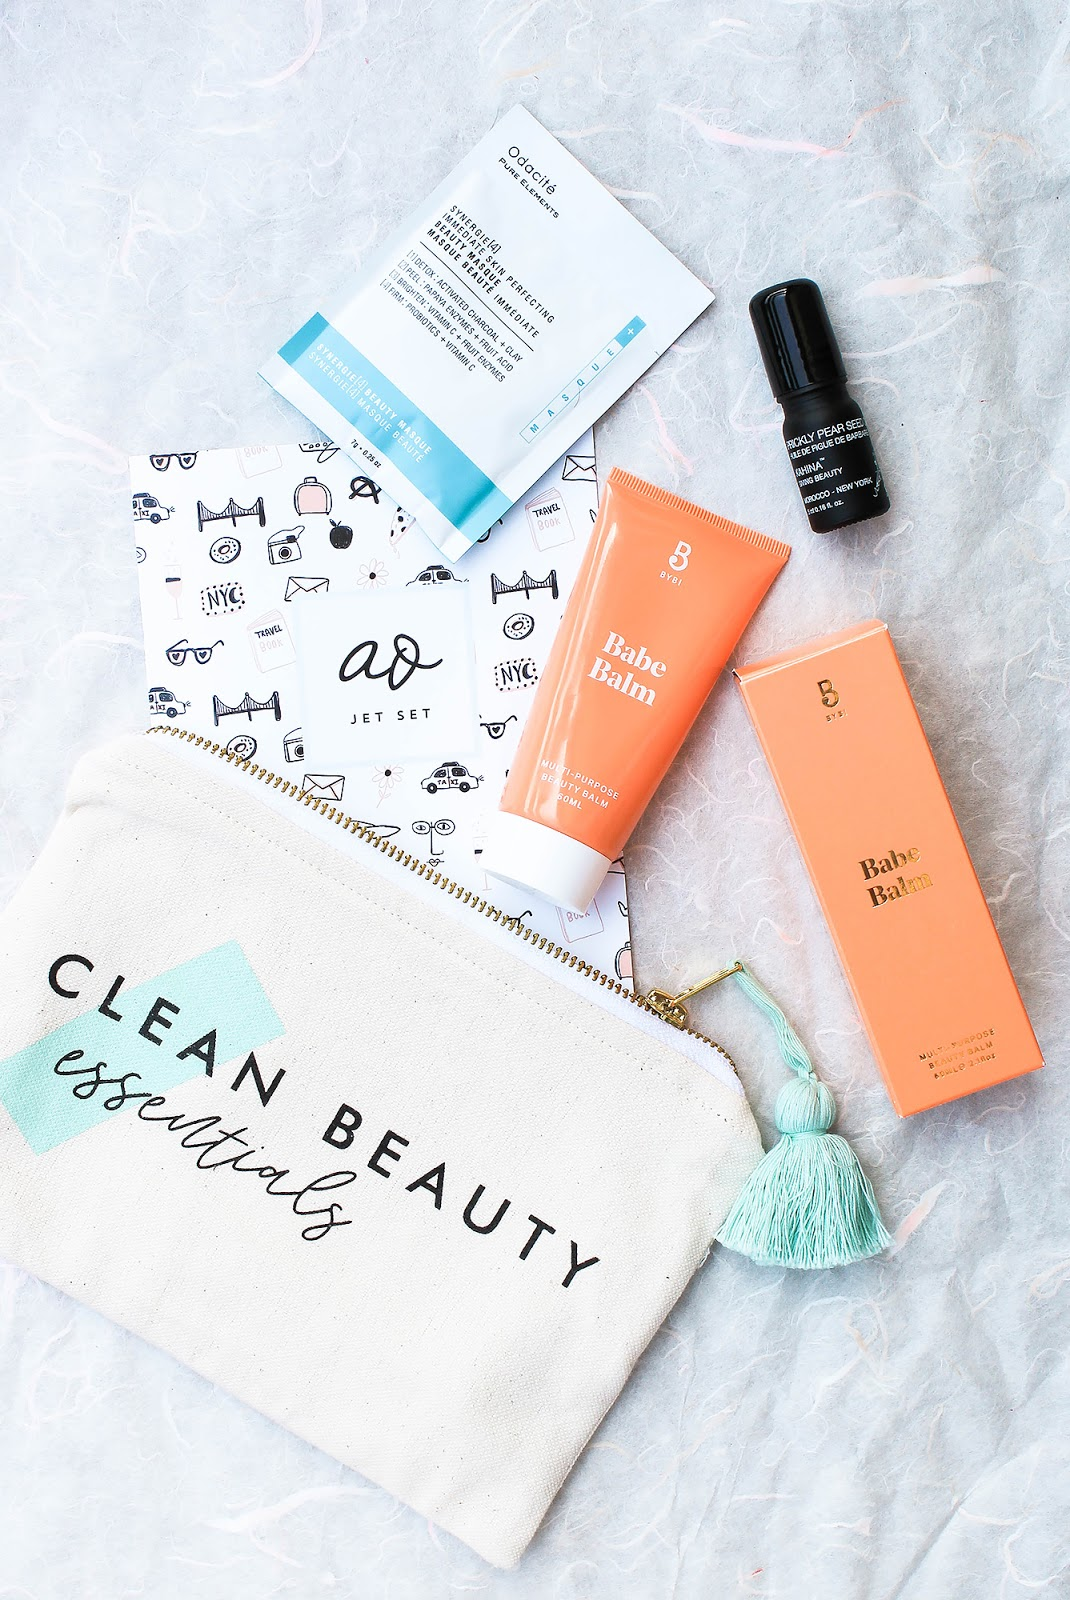 May Art of Organics Clean Beauty Box Clean Beauty Essentials. JET SET. Kahina Giving Beauty, Odacite, BYBI, Piece & Co.